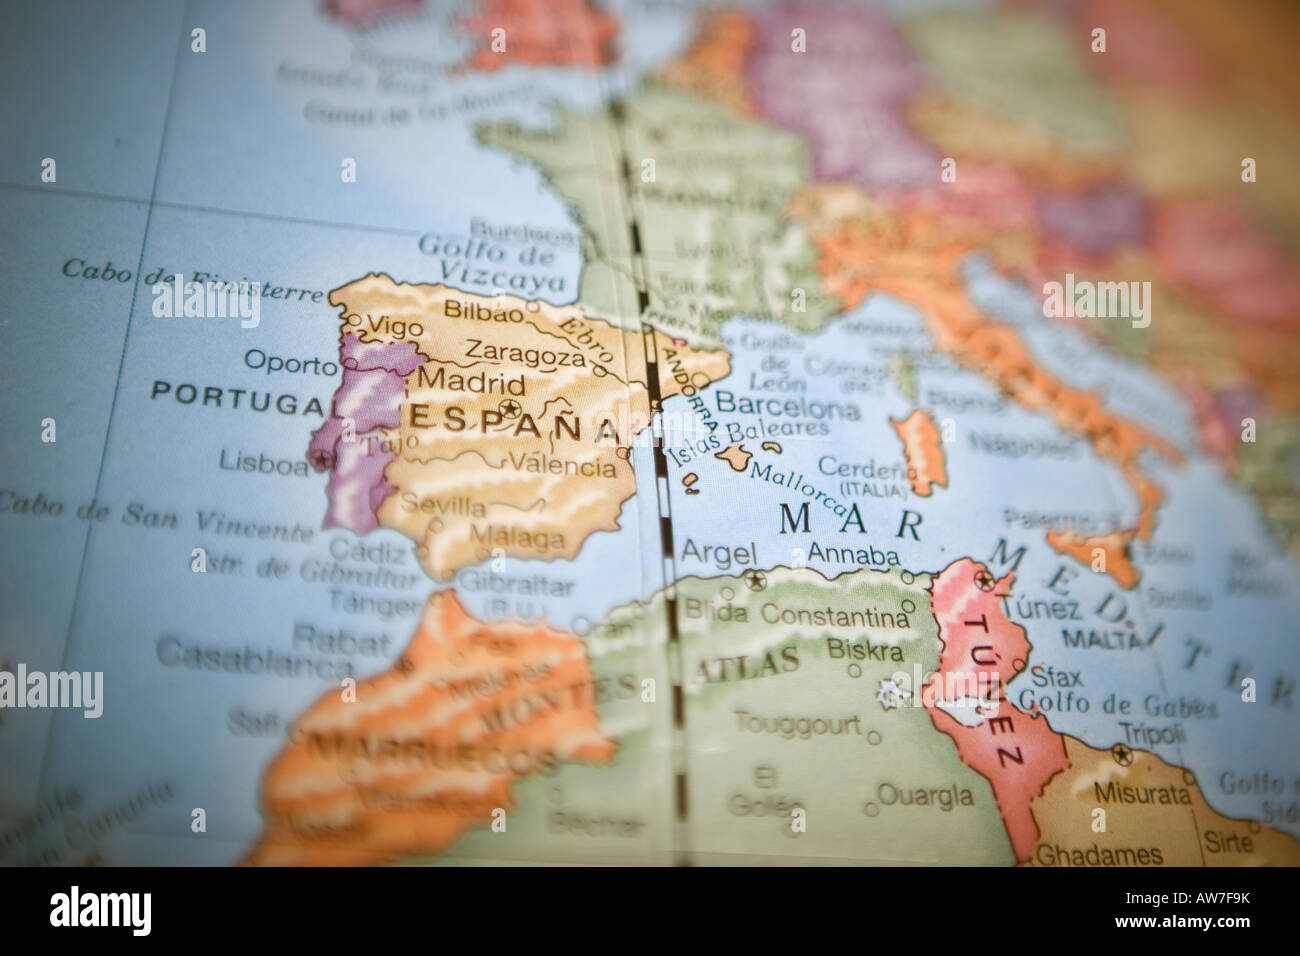 Map globe europe cartography depth stock photos map globe europe world map globe with focus on spain with shallow depth of field stock image publicscrutiny Image collections